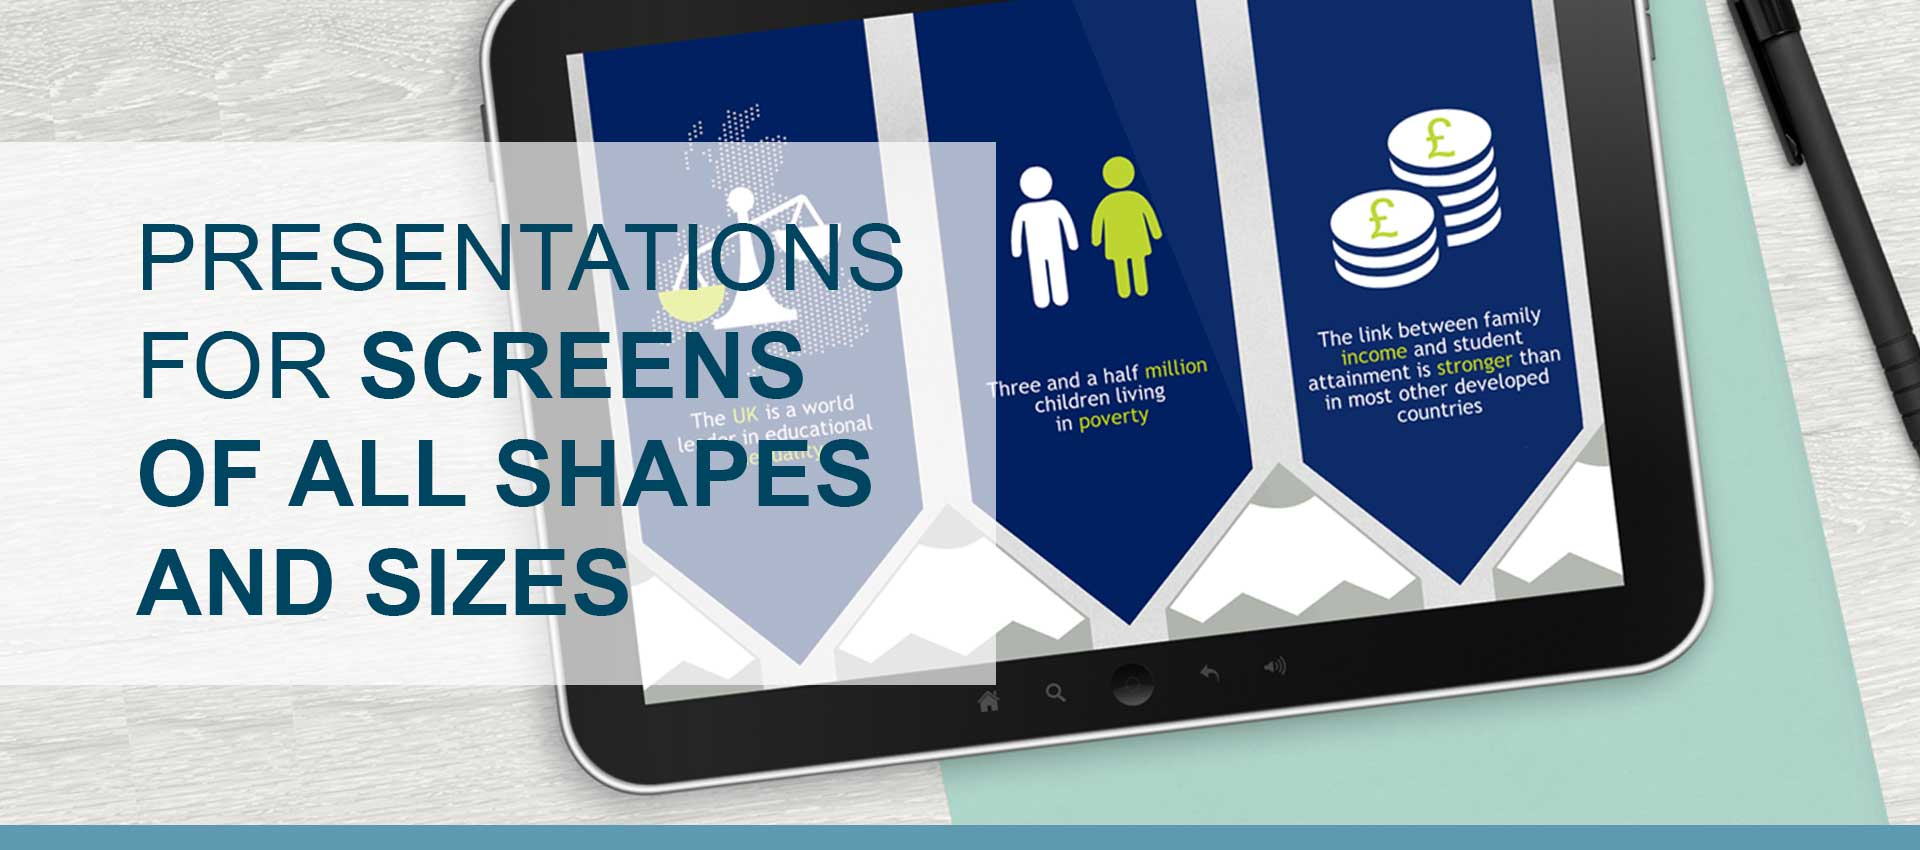 Presentations for screens of all shapes and sizes